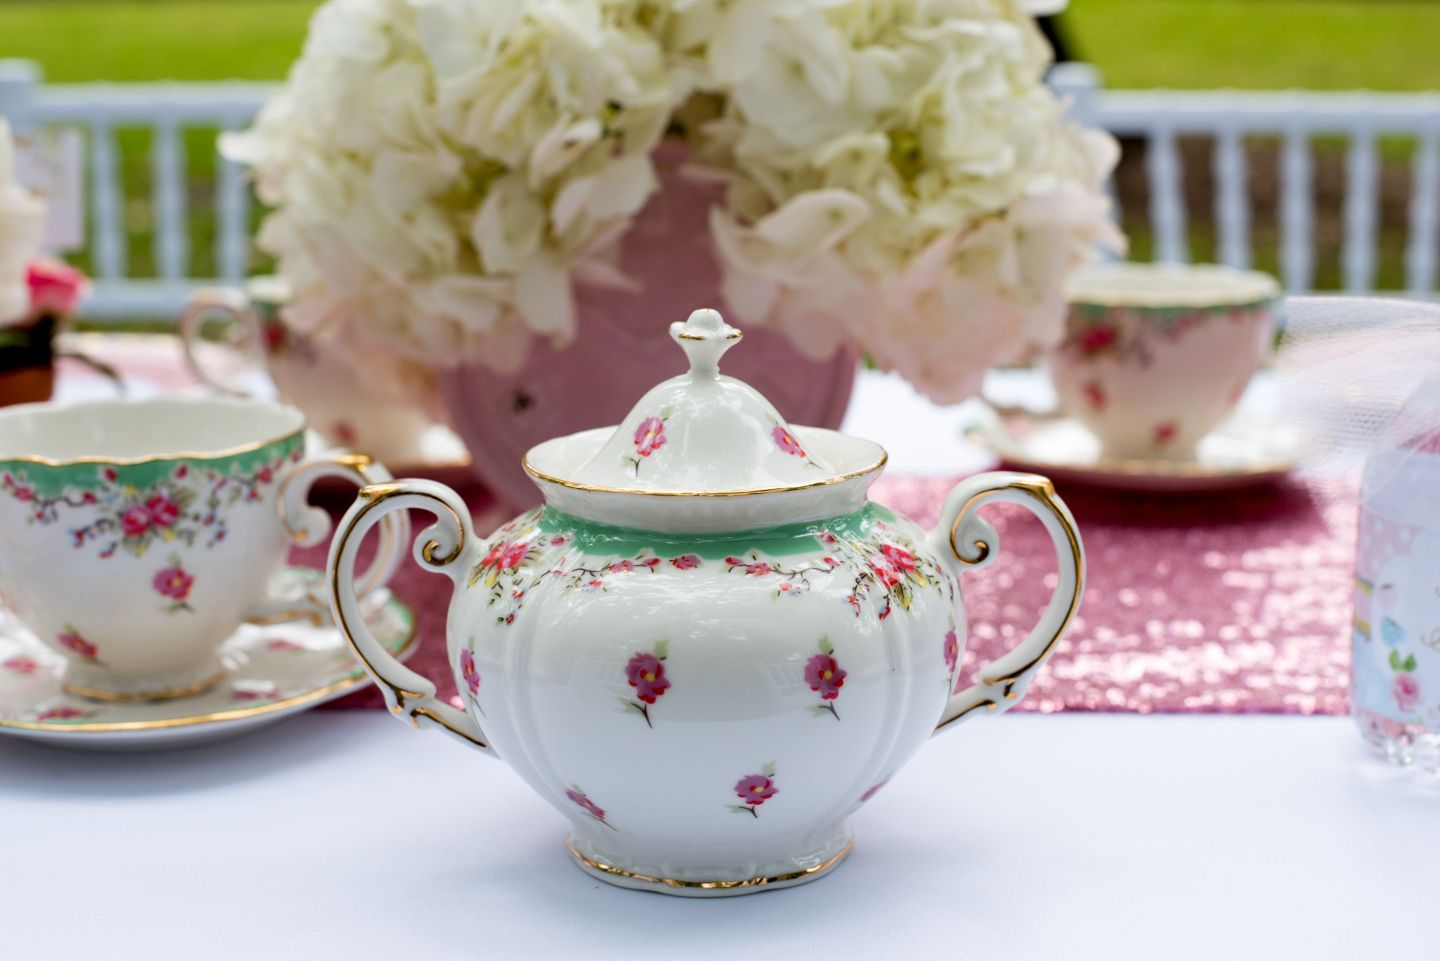 TeaParty-9-1440x961 Children's Tea Party Inspiration - How to Plan a Child's Party with a Photographer